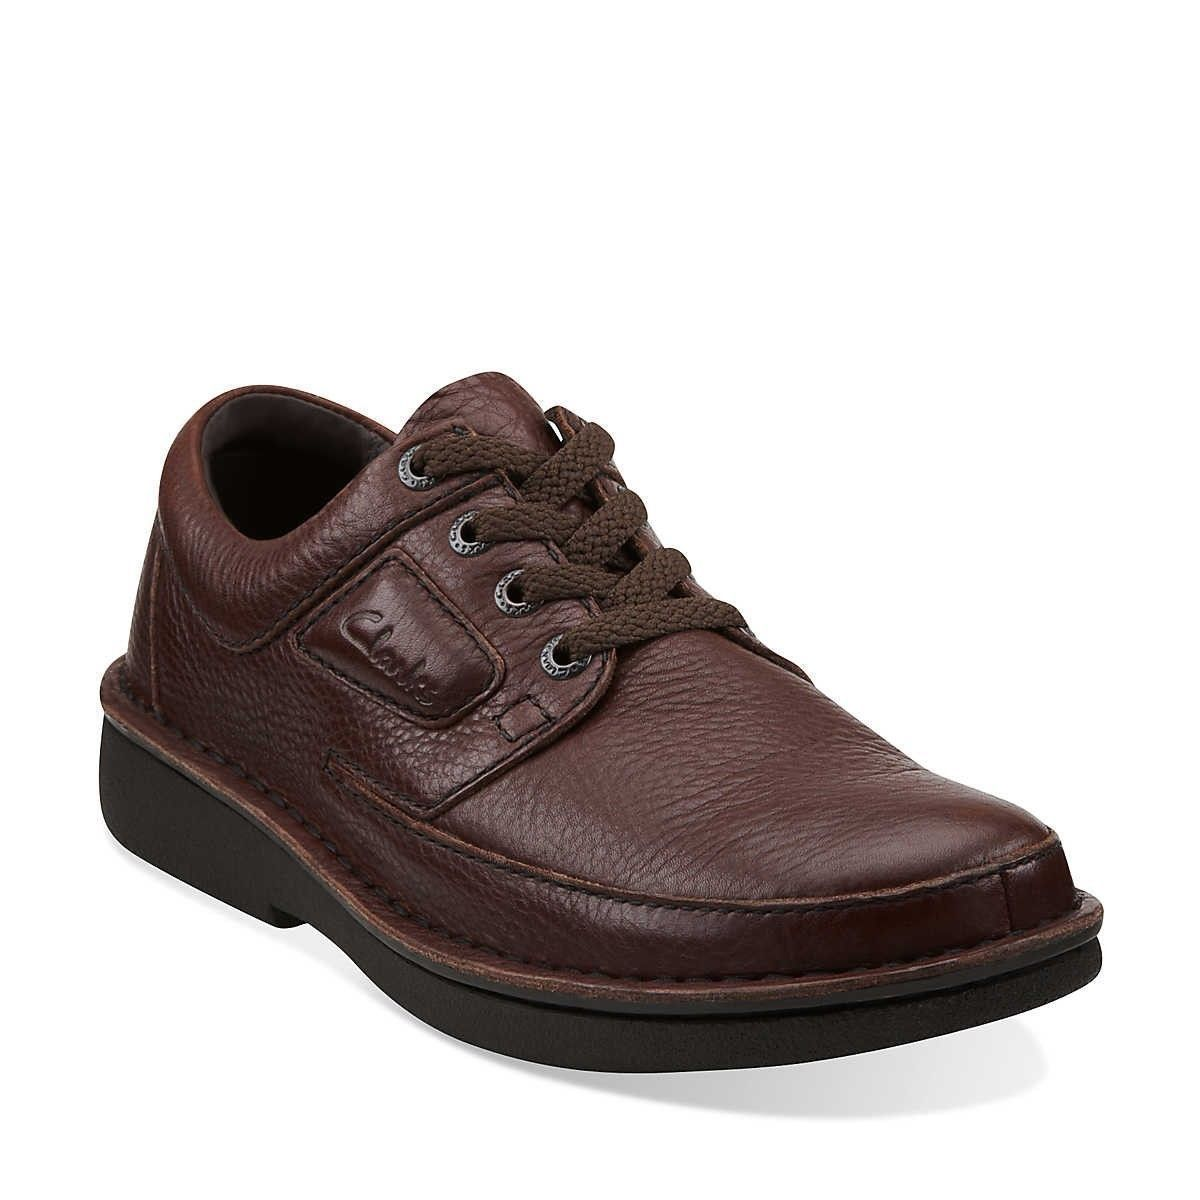 New Clarks Natureveldt Brown Leather Natural Oxfords Mens Shoes 260 62083